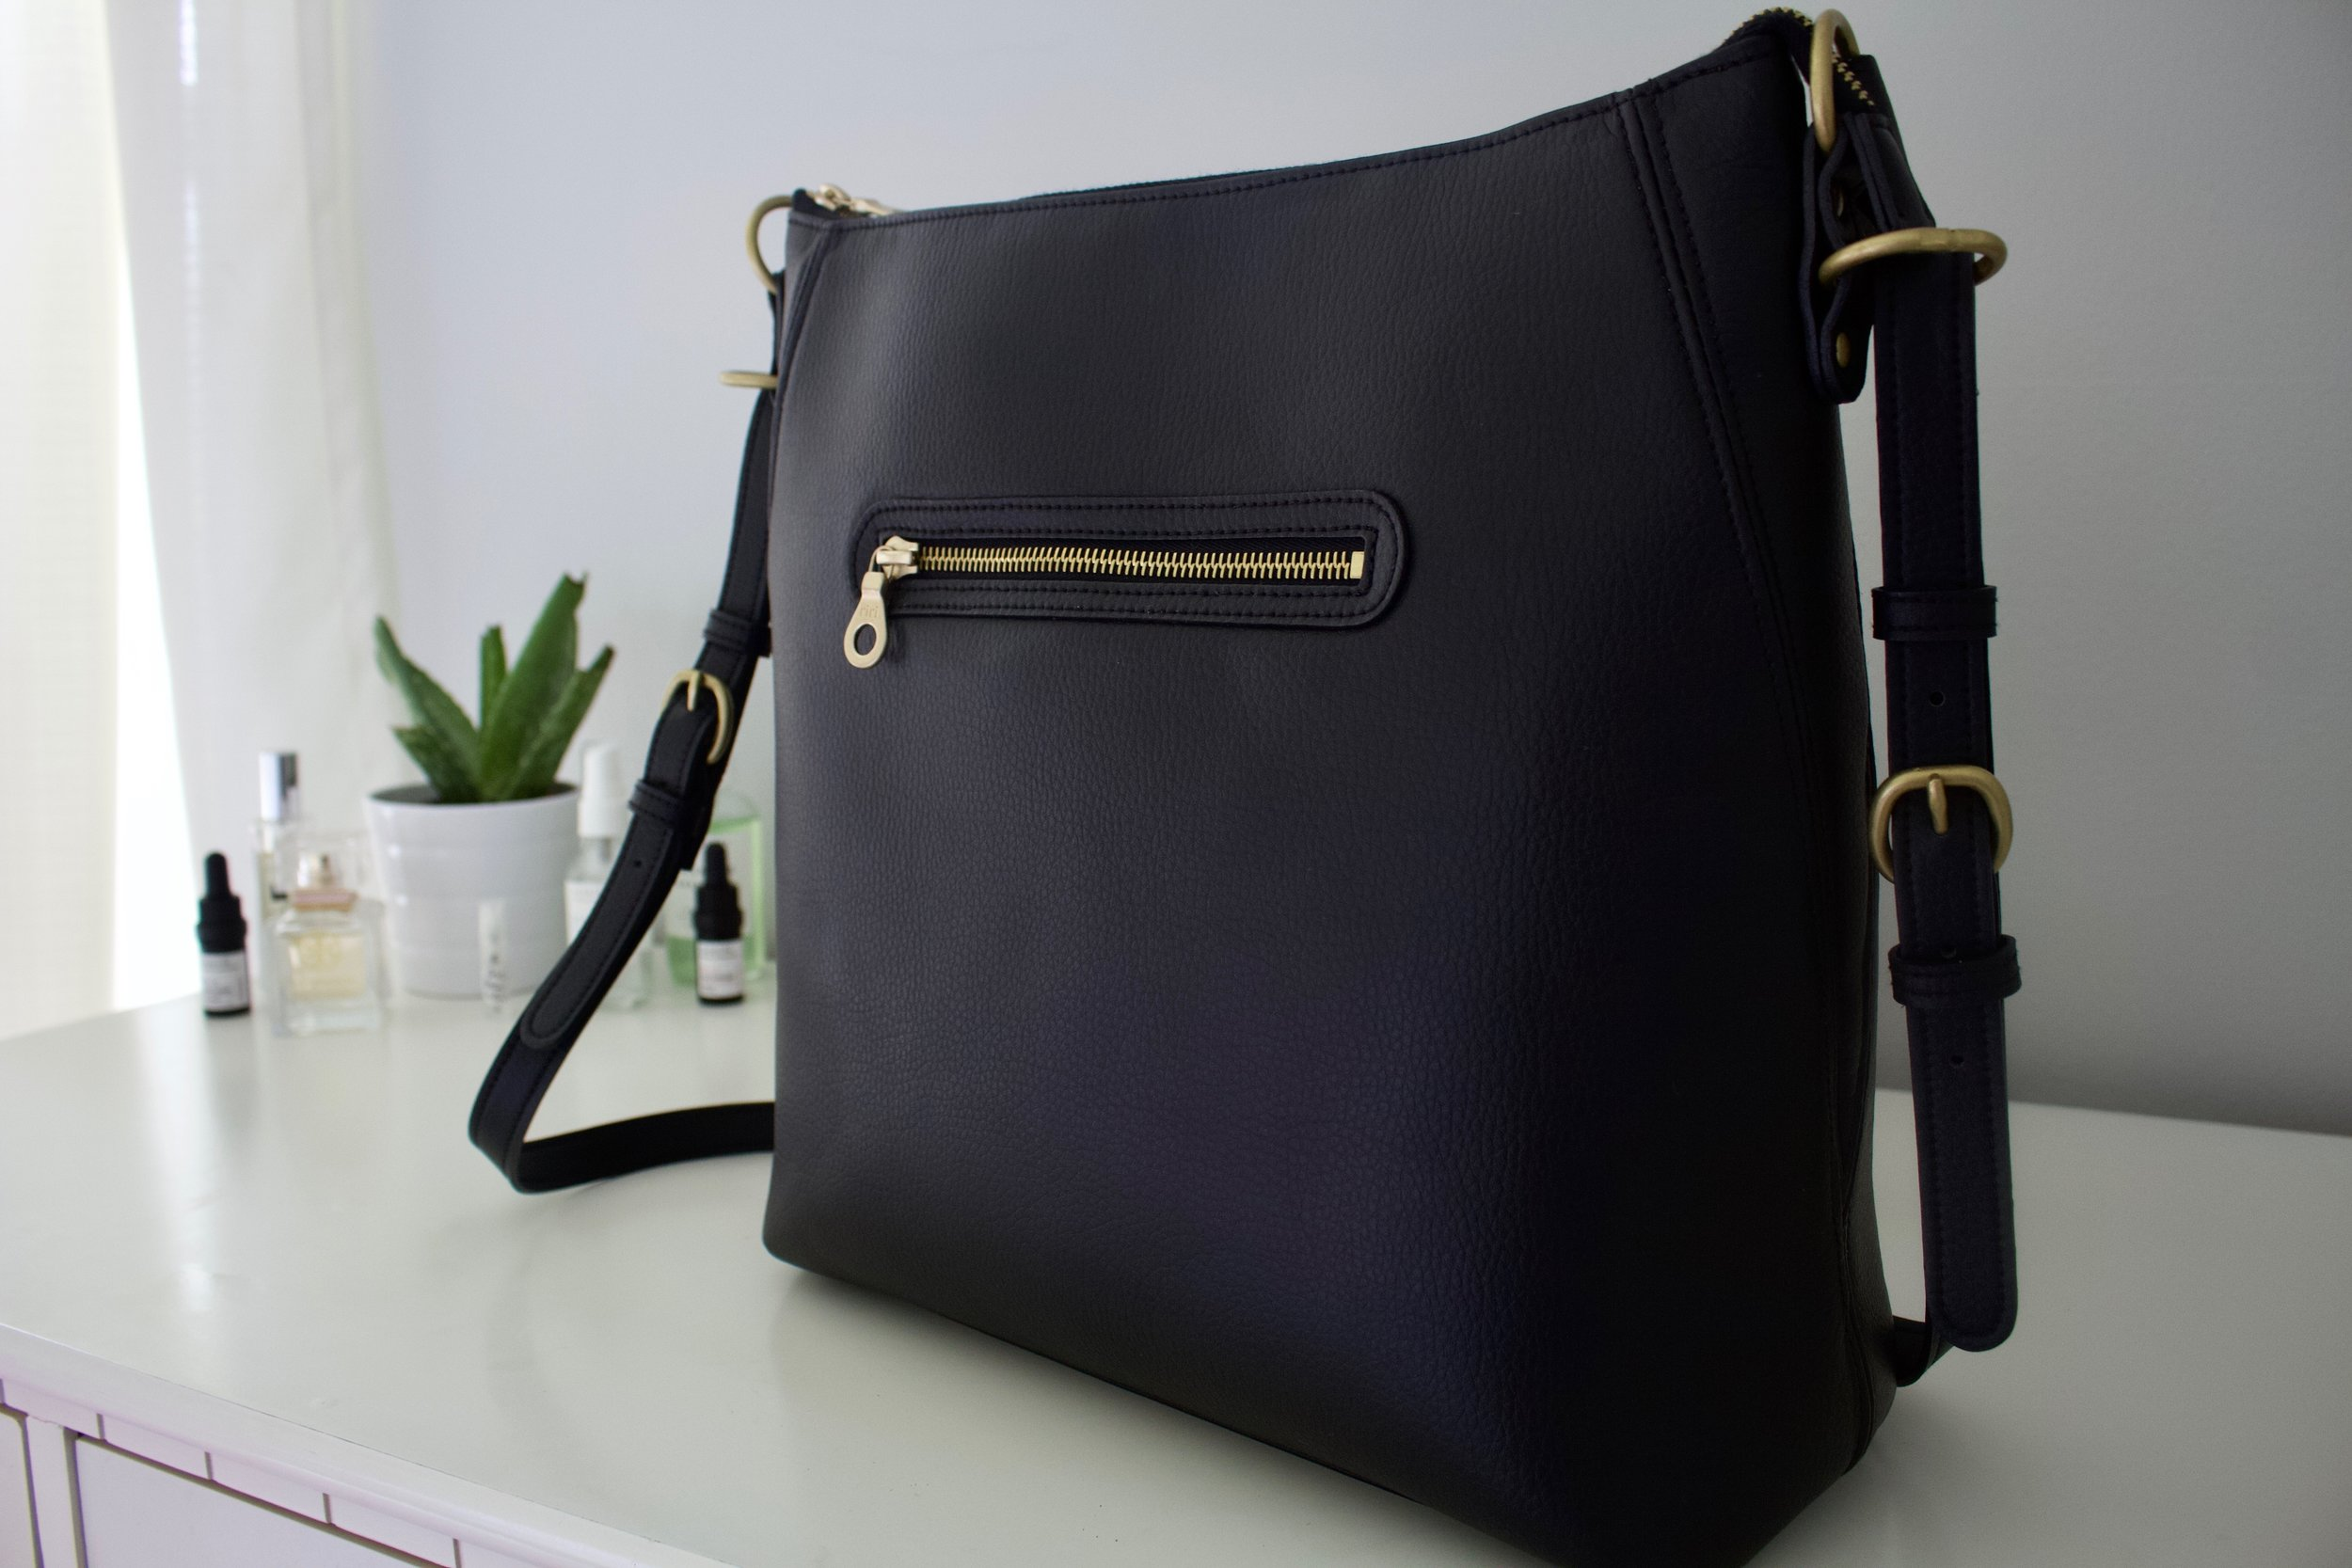 Filbert Vegan Leather 'Baker' Bag